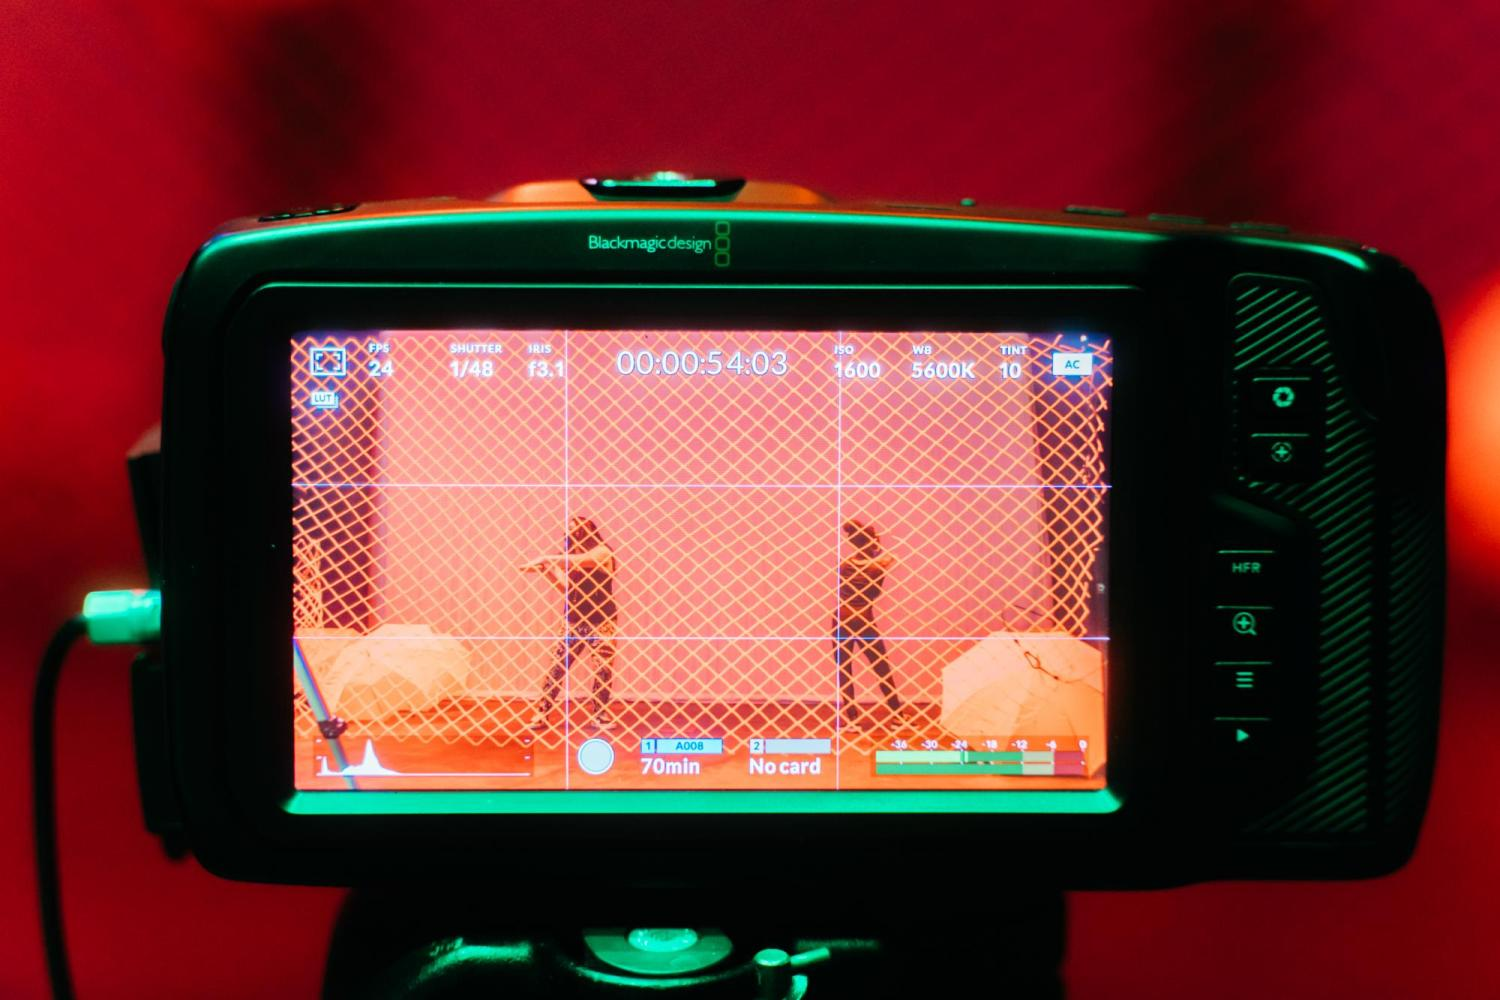 Photo of camera screen showing dancers